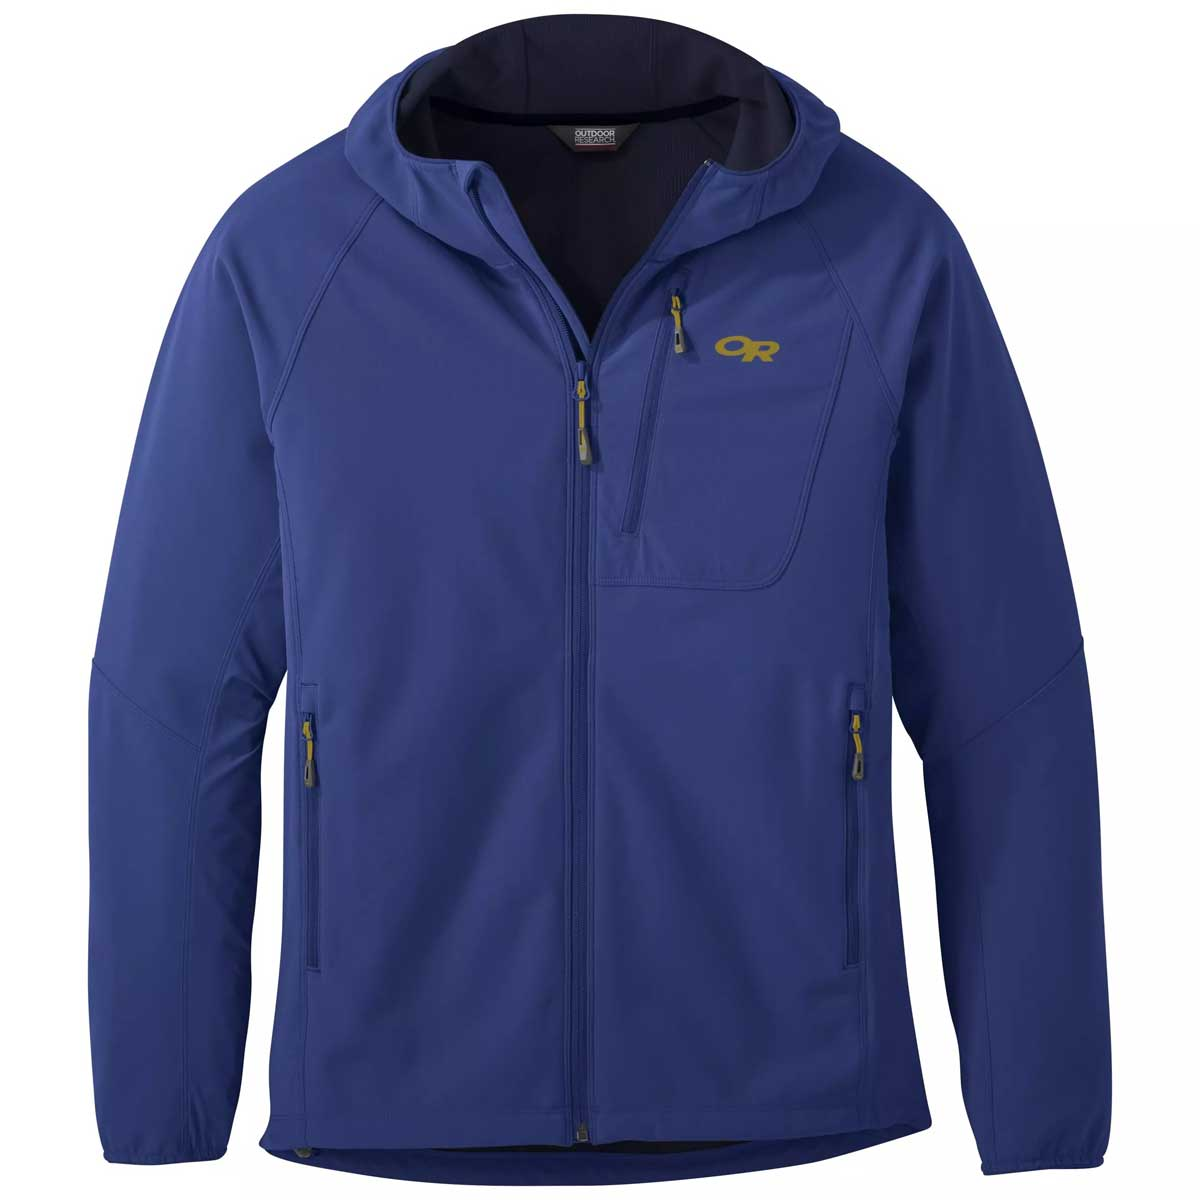 Outdoor Research Men's Ferrosi Grid Hooded Jacket in Sapphire